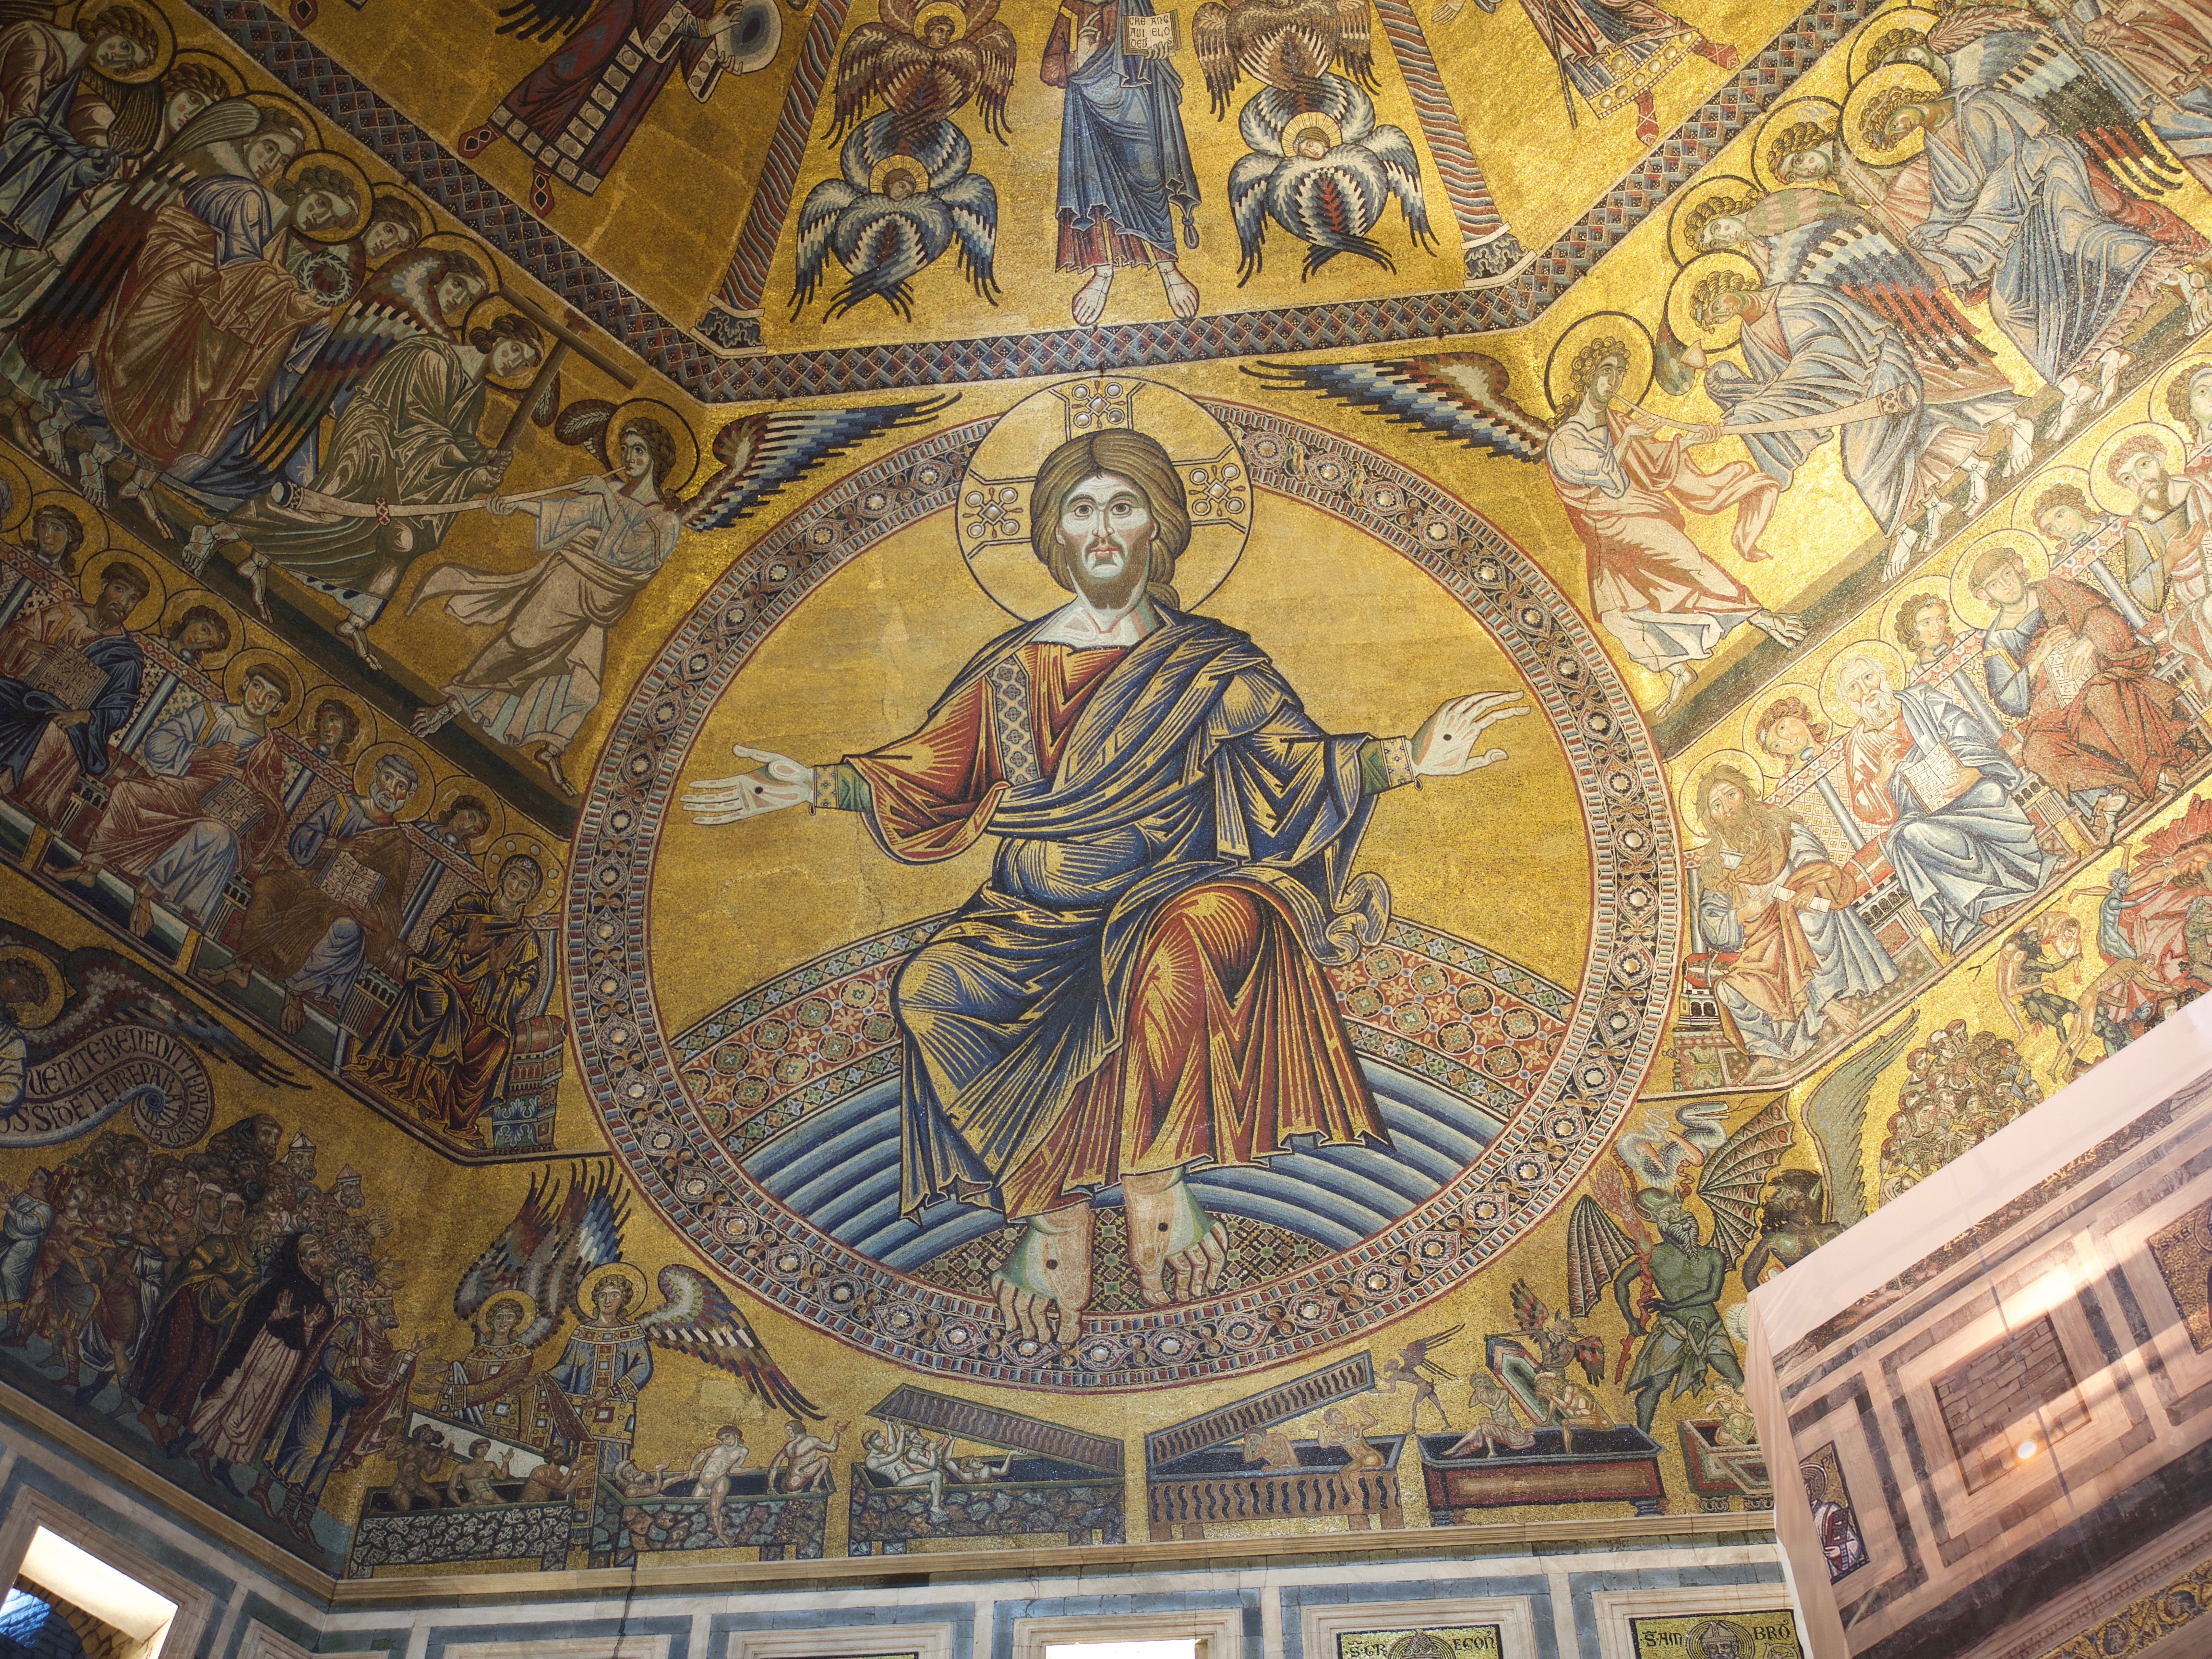 Christ Pantocrator, Italo-Byzantine Mosaic from the Baptistery in Florence